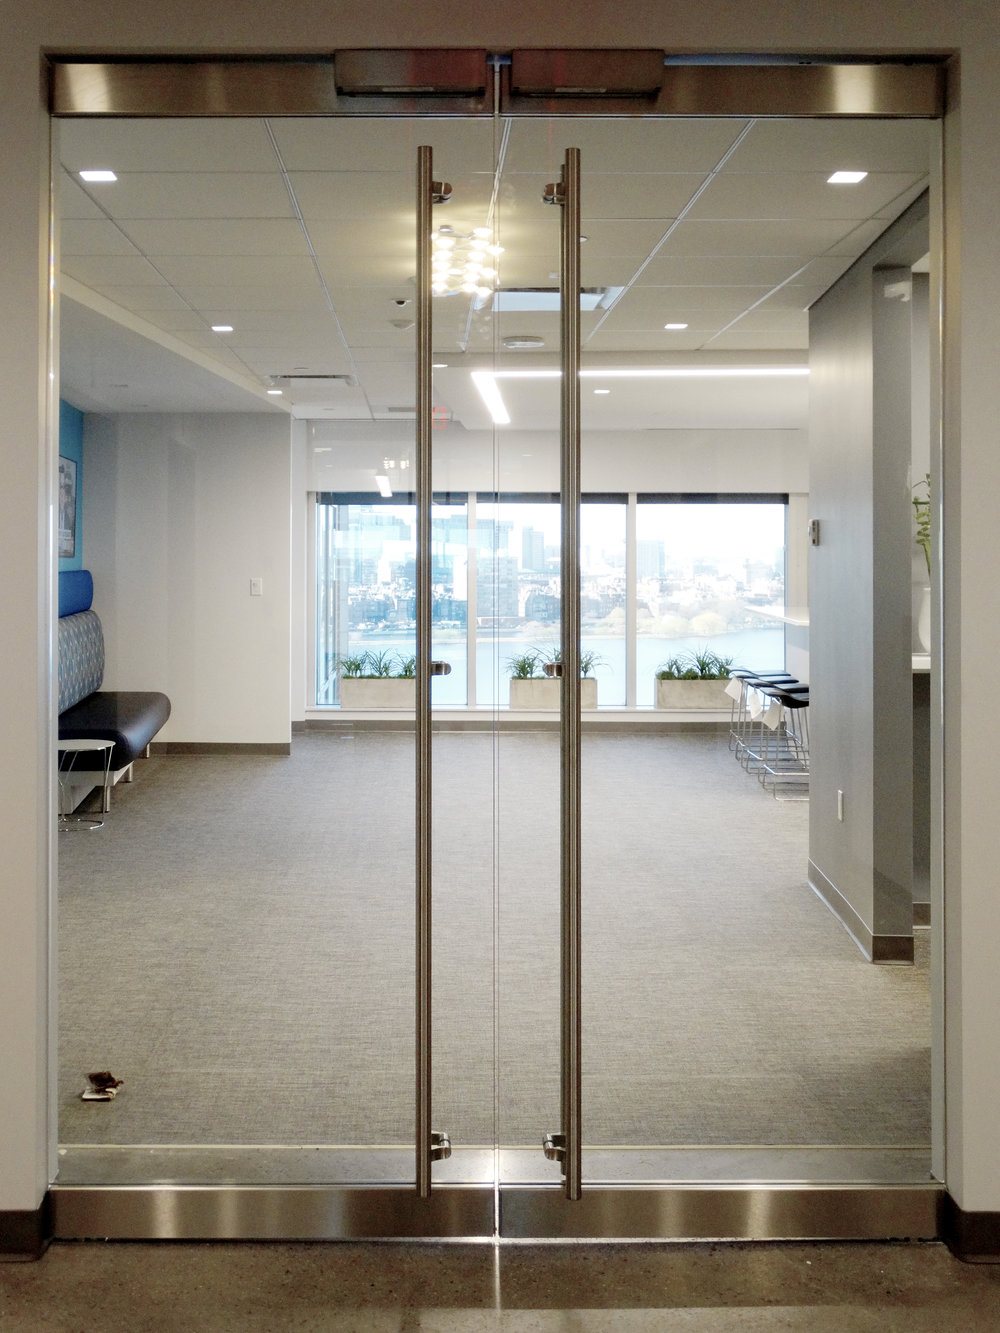 Illume Frameless Glass Rail Doors Offset Ladder Pulls Maglock - Spaceworks AI.jpg